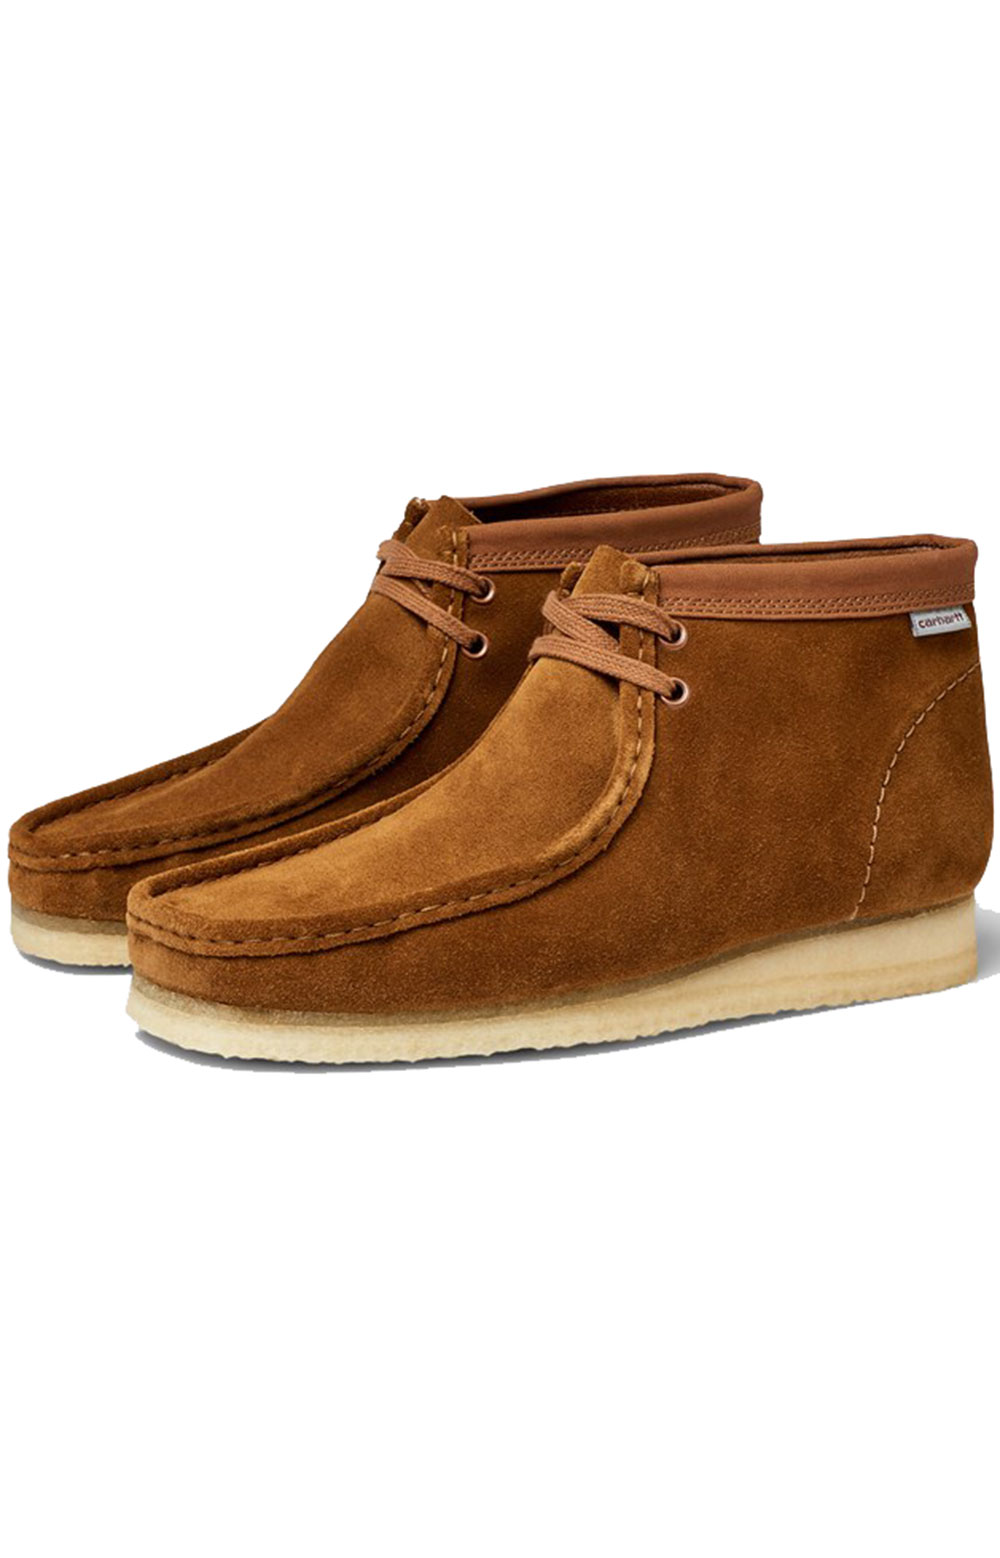 (26146193) Wallabee Boot - Brown 4